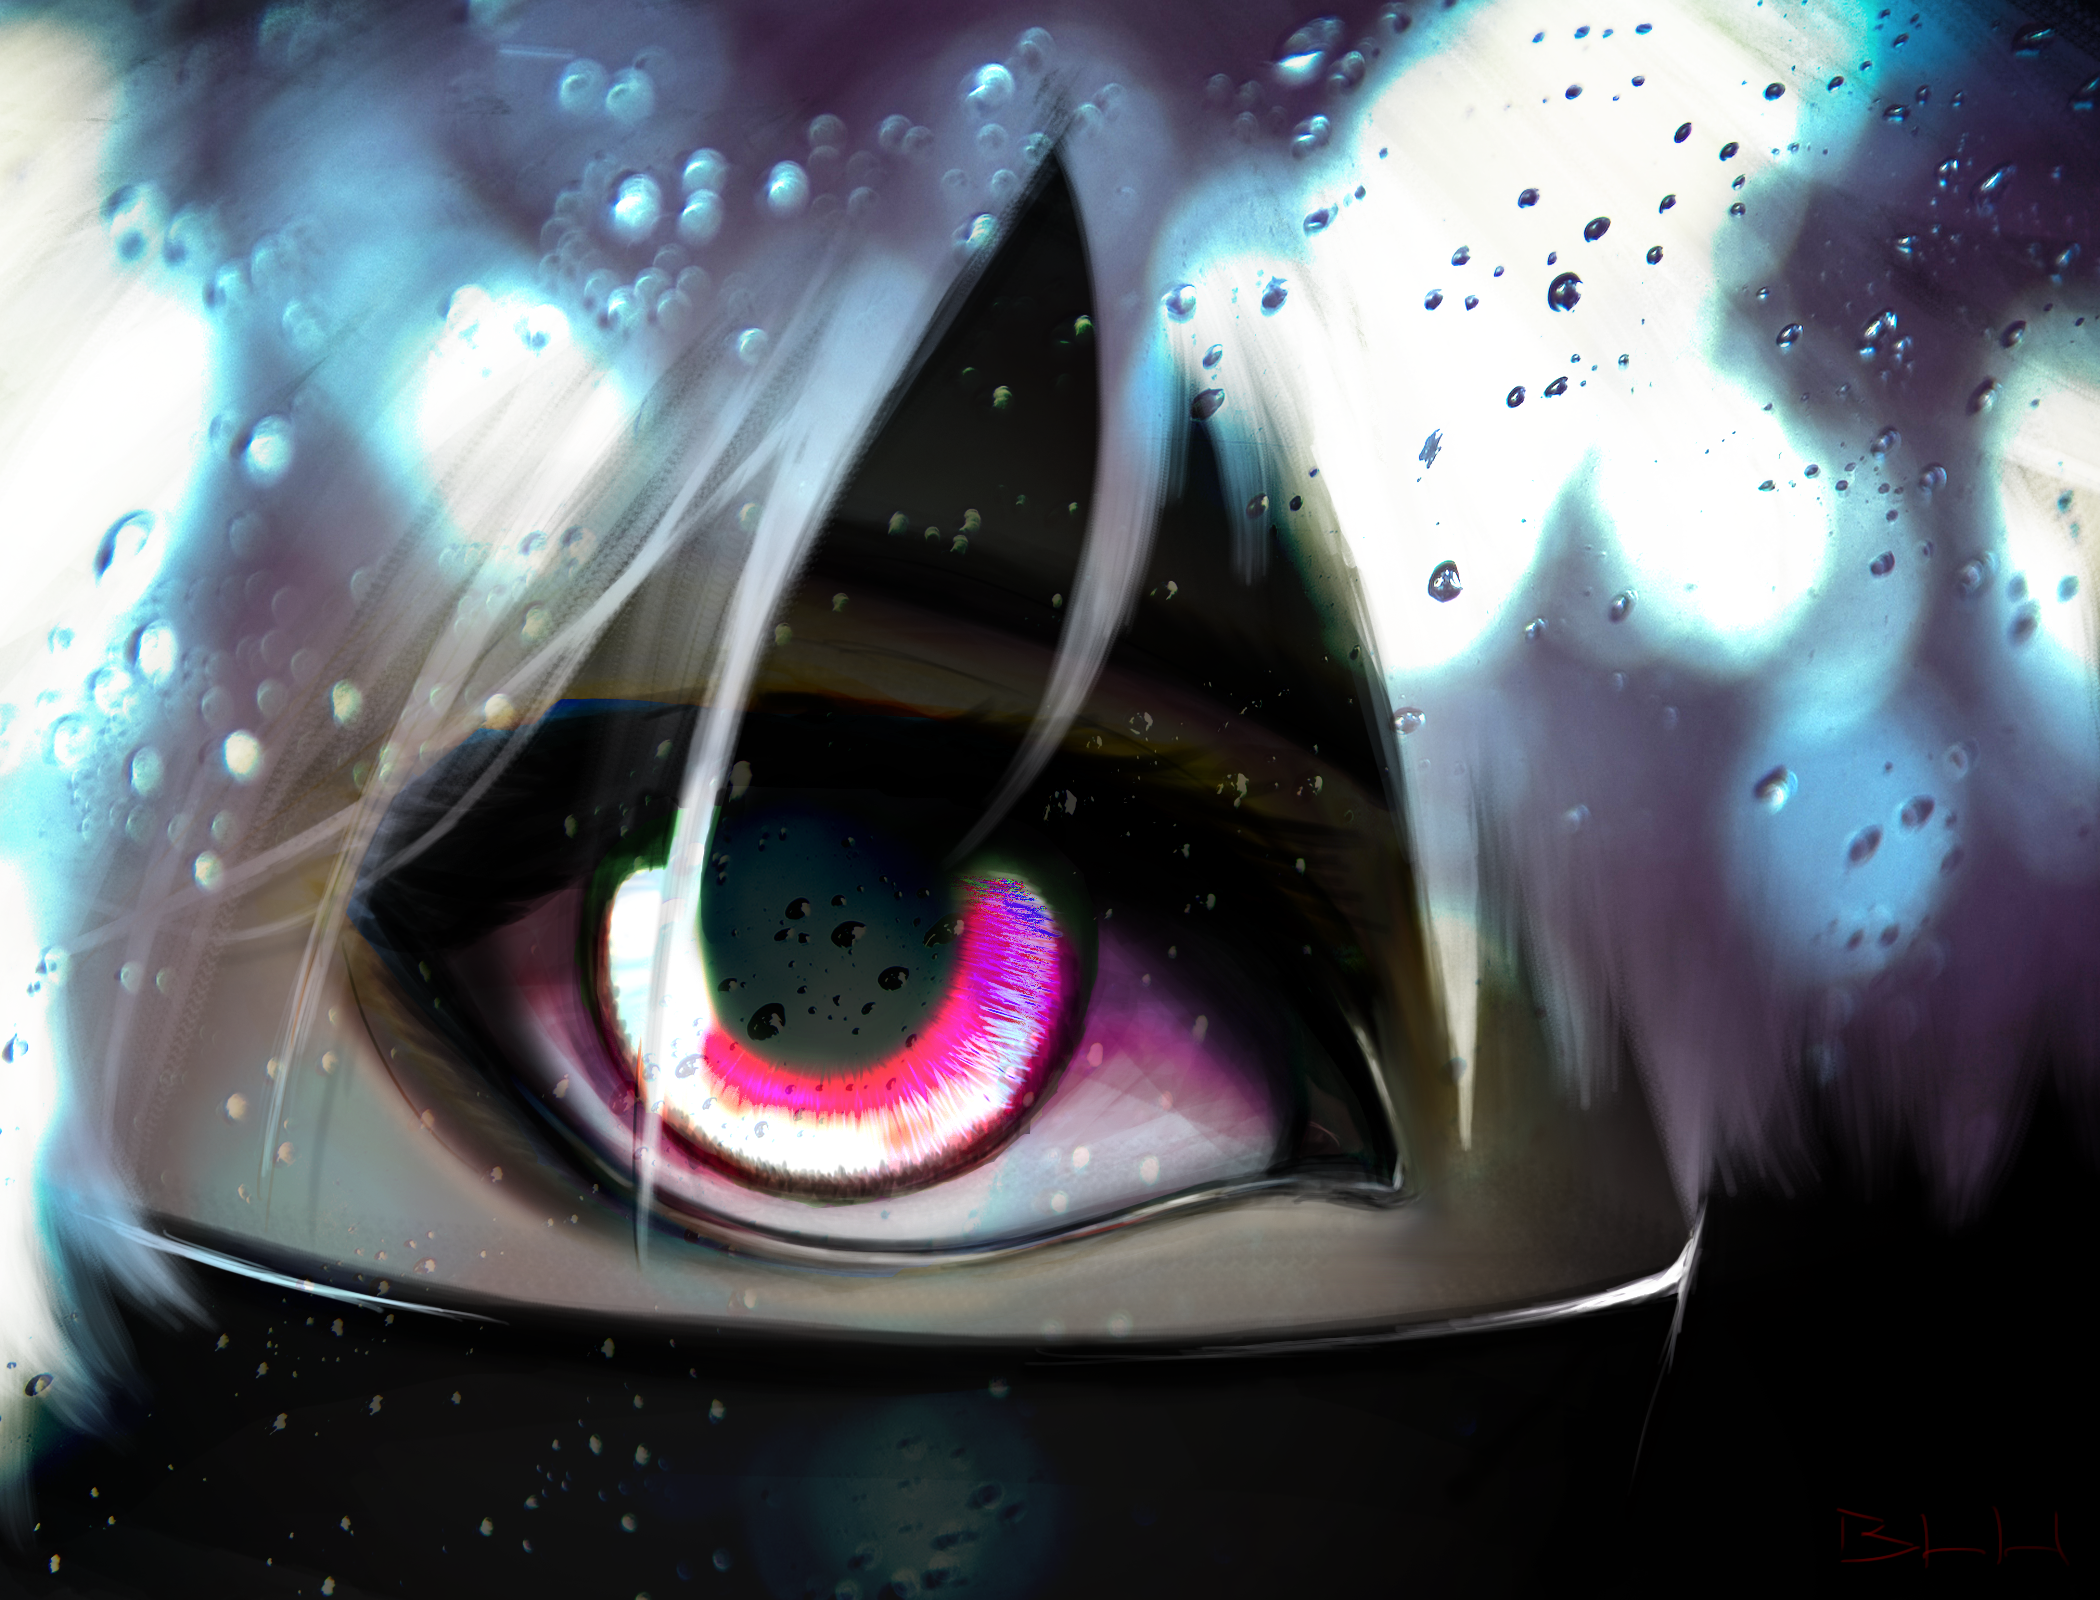 Google chrome themes tokyo ghoul - Best Tokyo Ghoul Wallpaper Full Hd Desktop Background For Any Computer Laptop Tablet And Phone Anime Chrome Themes